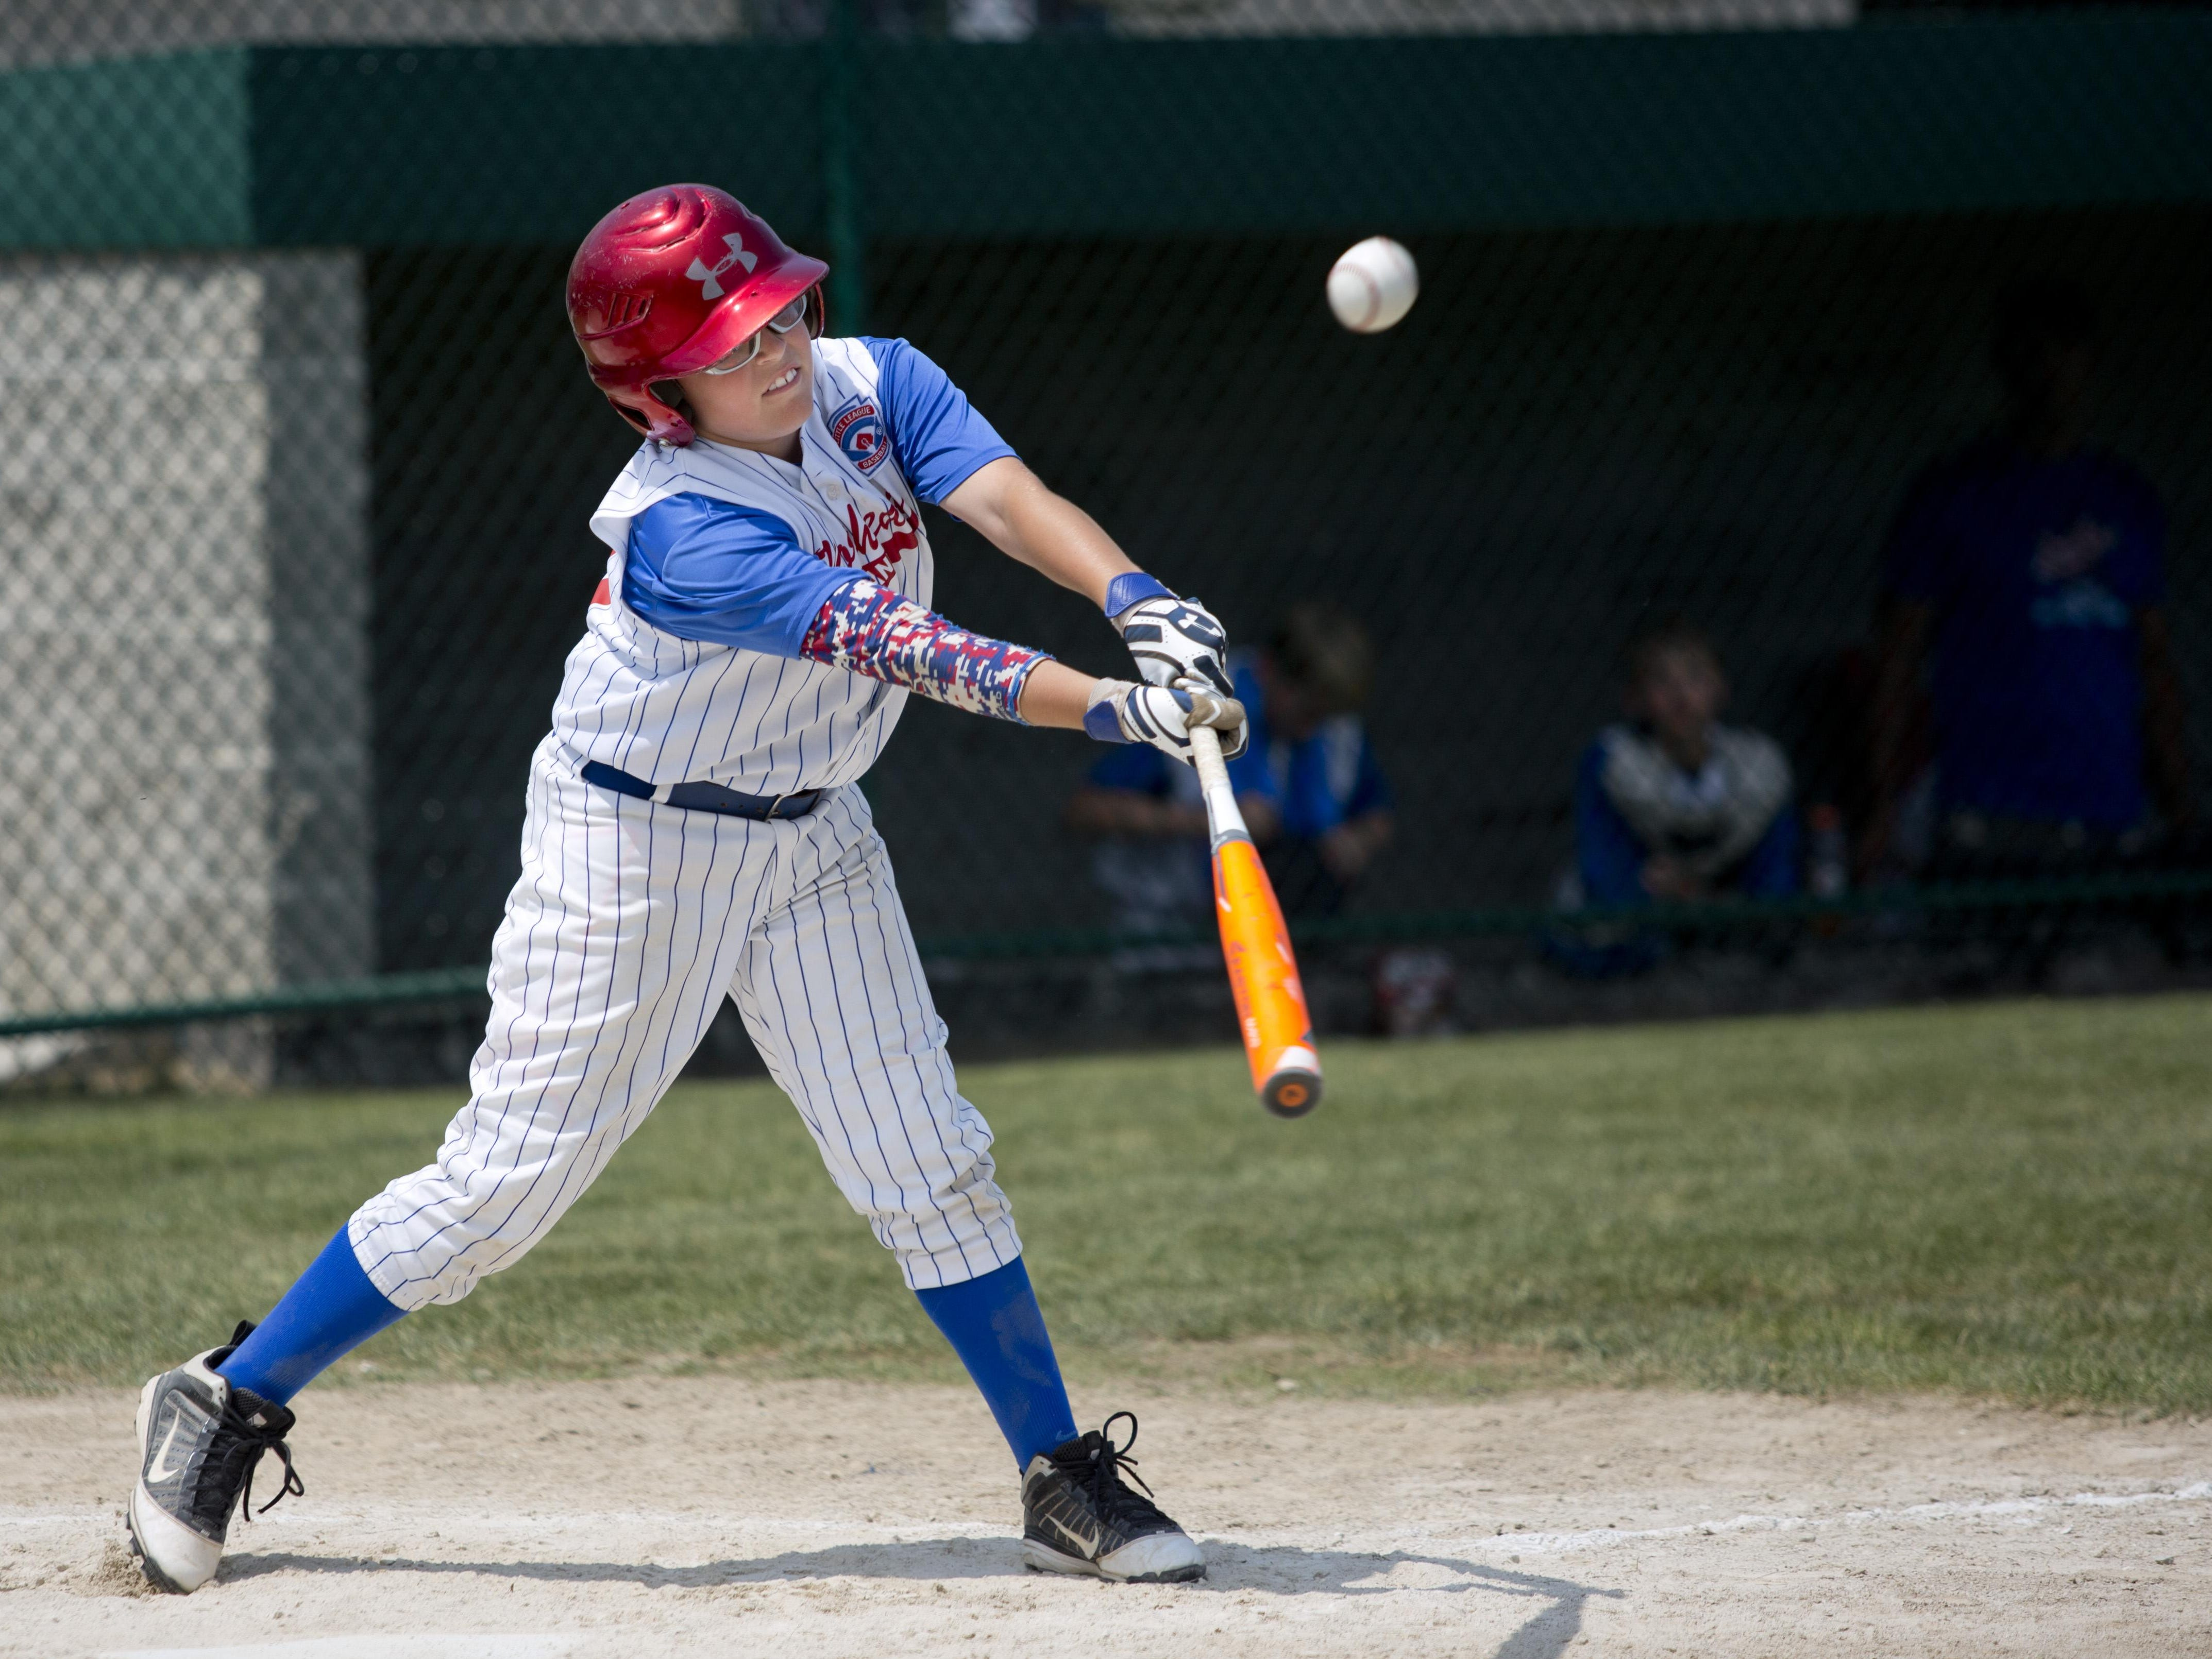 Midland Northeast's Braylen Laverty gets a hit during a state final 10-and-under baseball game Wednesday, July 29, 2015 in St. Clair.